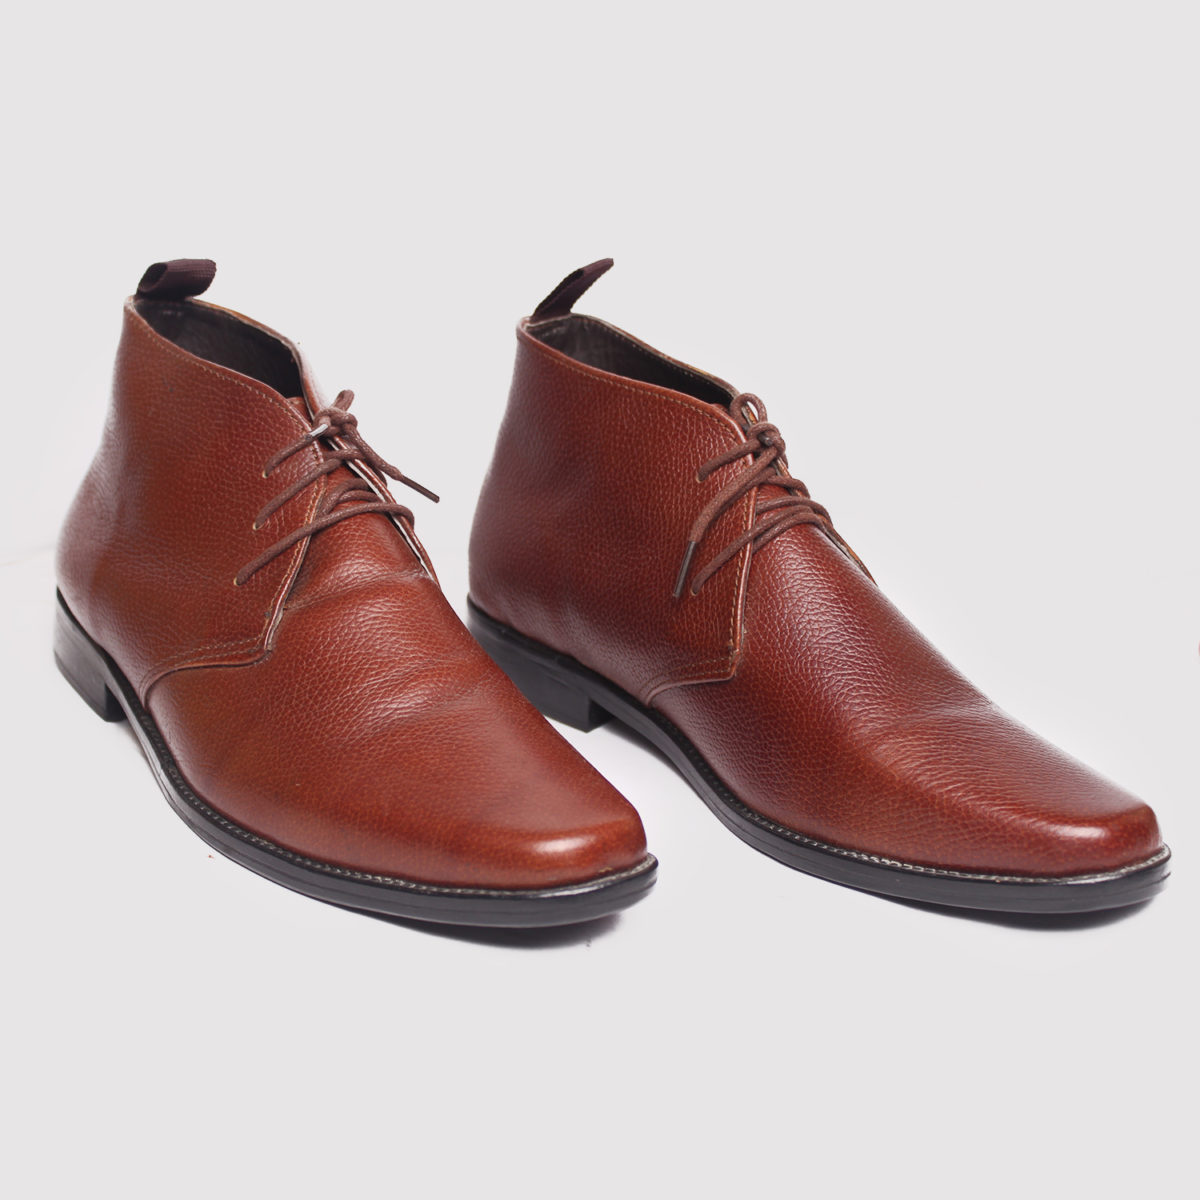 Chukka boots brown calf leather ZMB013 - Zorkle Shoes